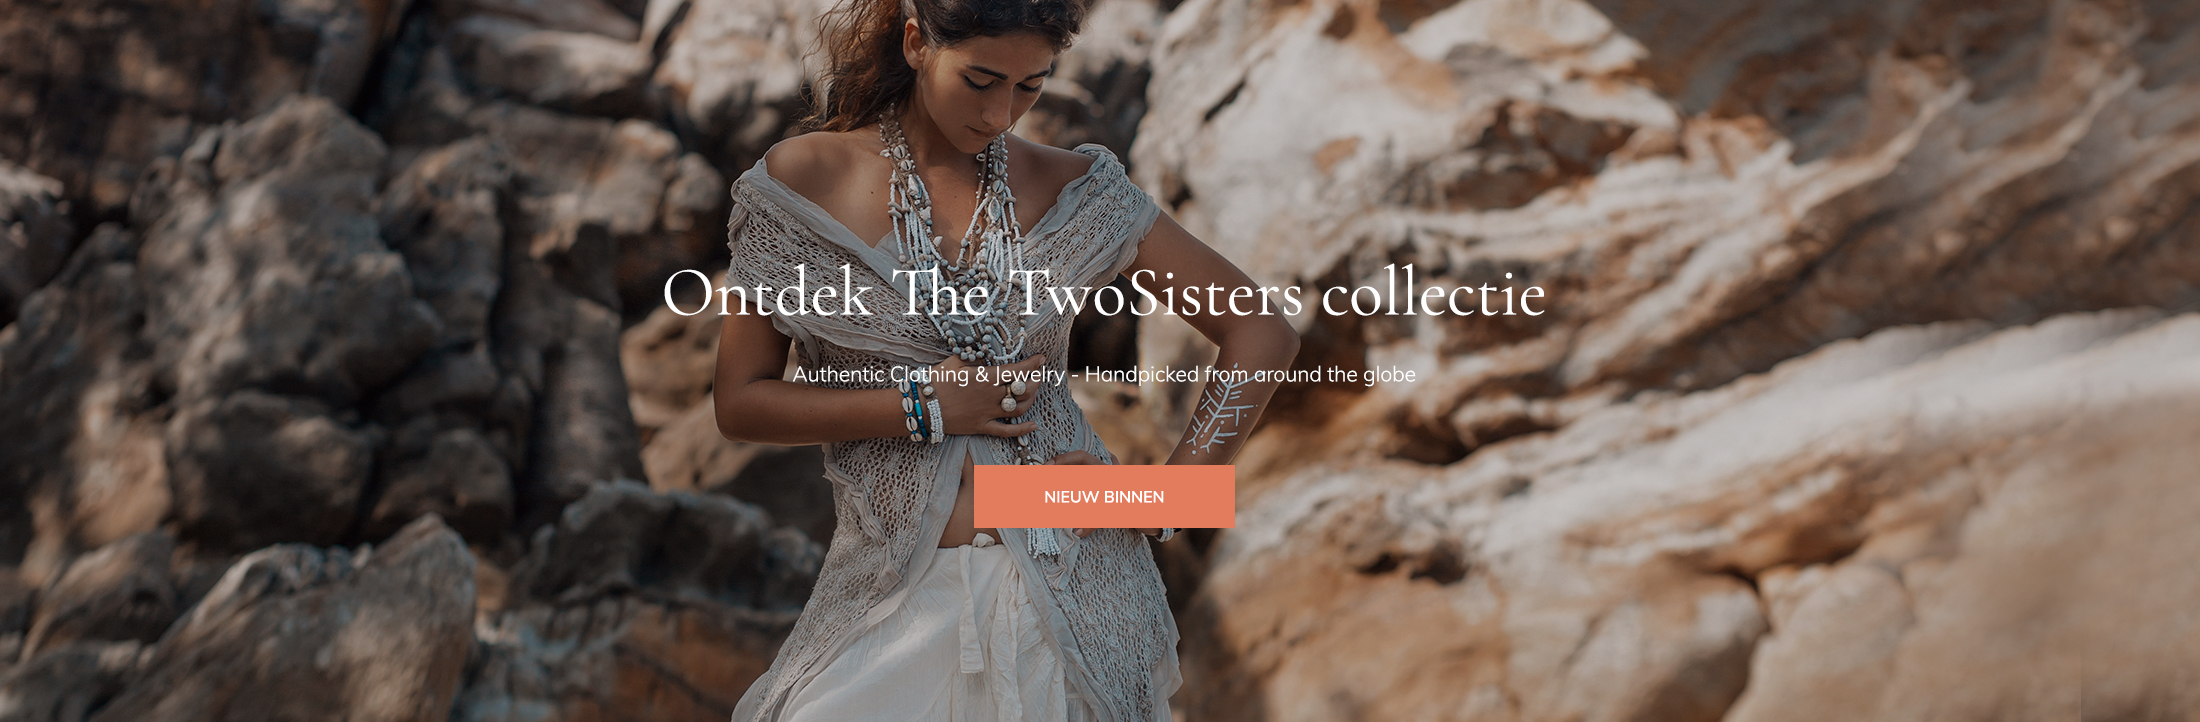 The Two-sisters webshop